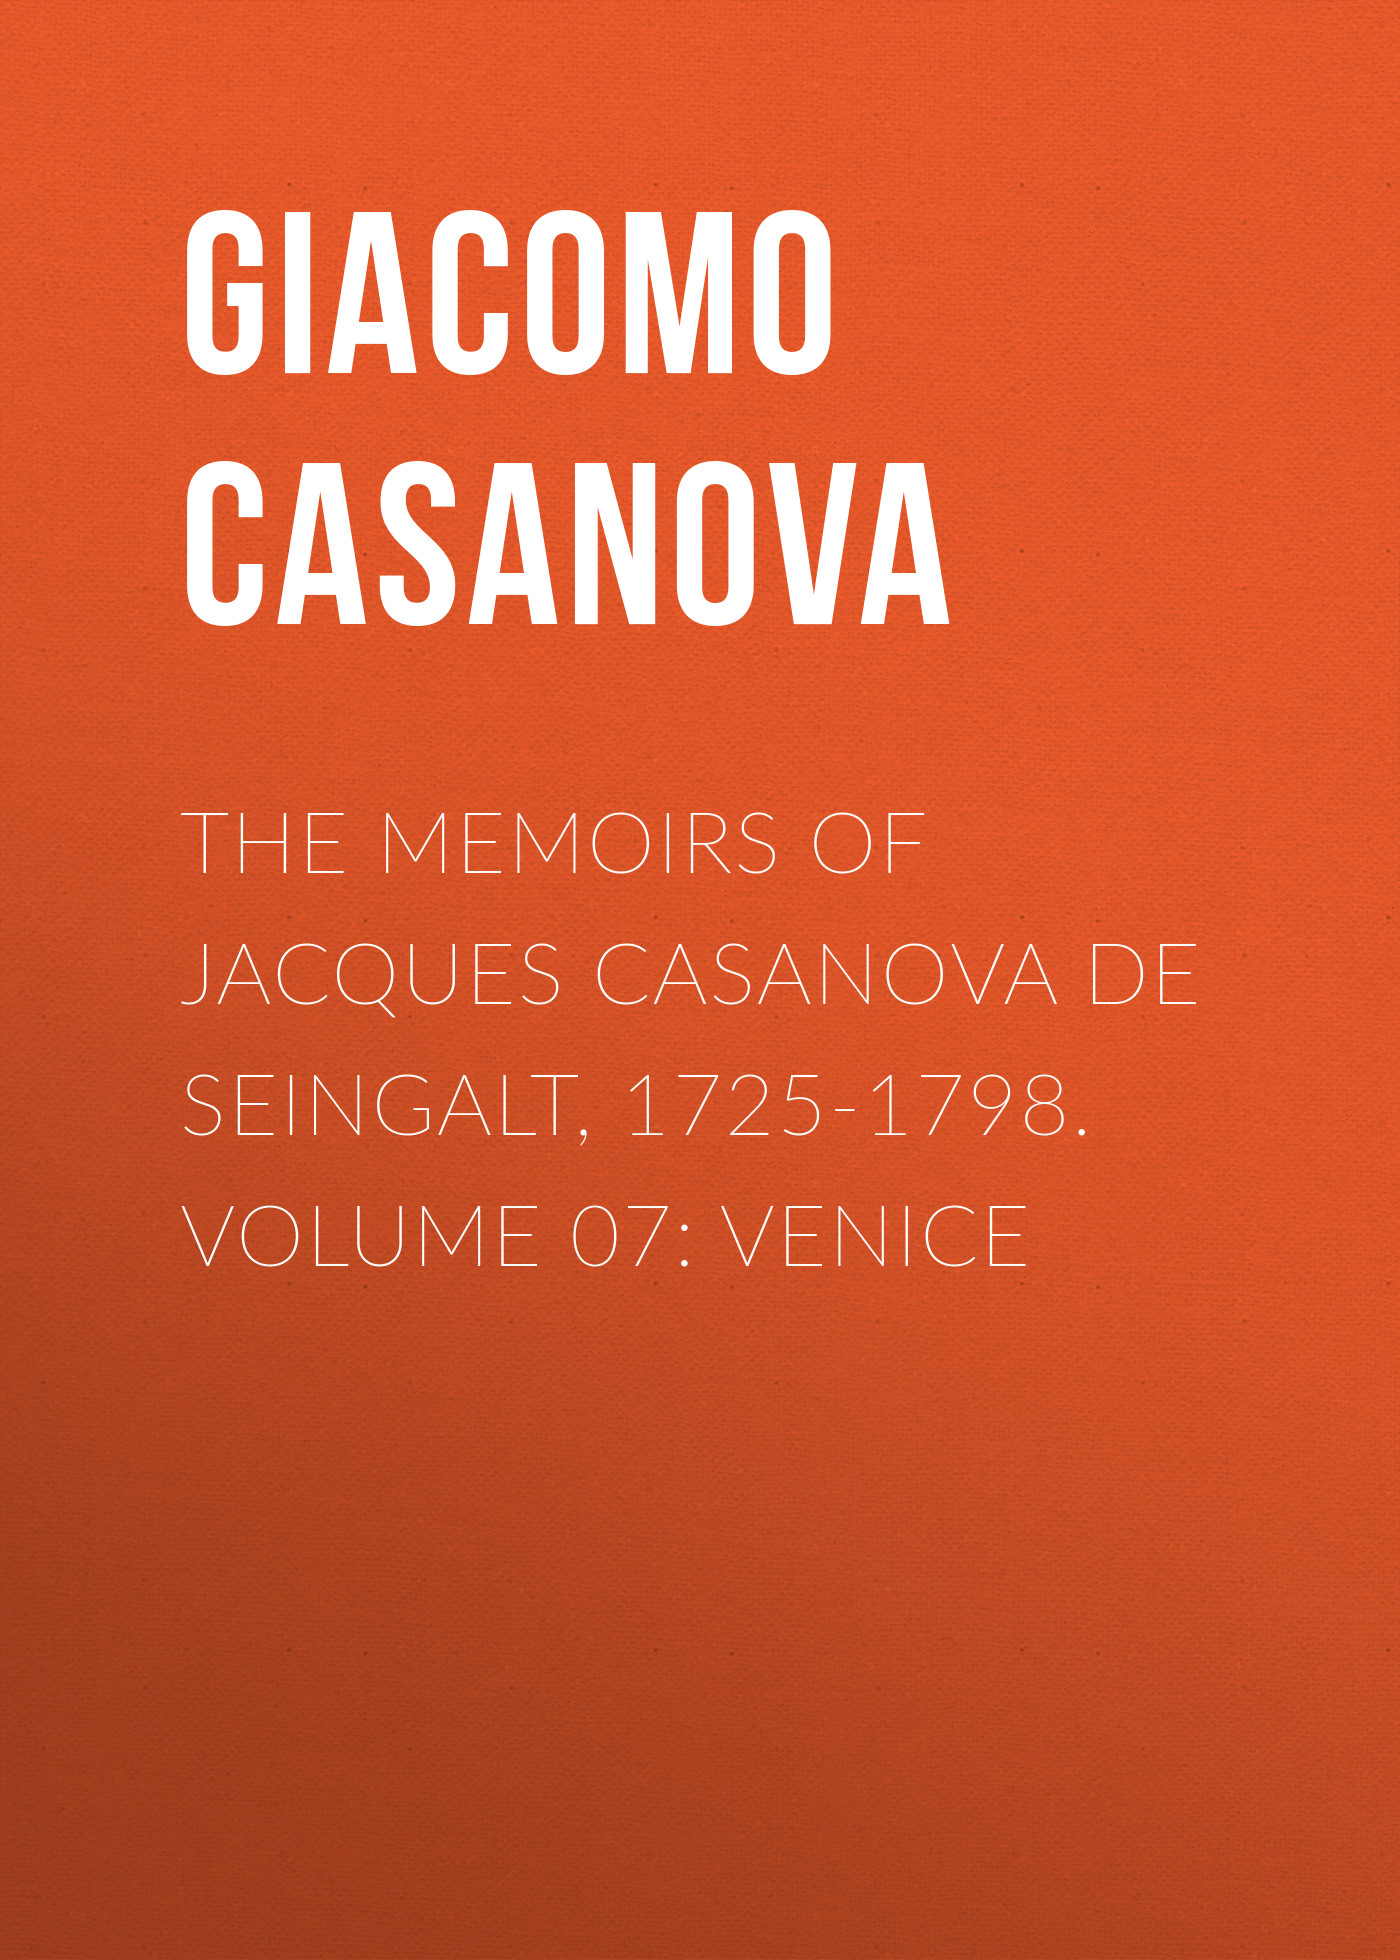 Giacomo Casanova The Memoirs of Jacques Casanova de Seingalt, 1725-1798. Volume 07: Venice giacomo casanova the memoirs of jacques casanova de seingalt 1725 1798 volume 30 old age and death